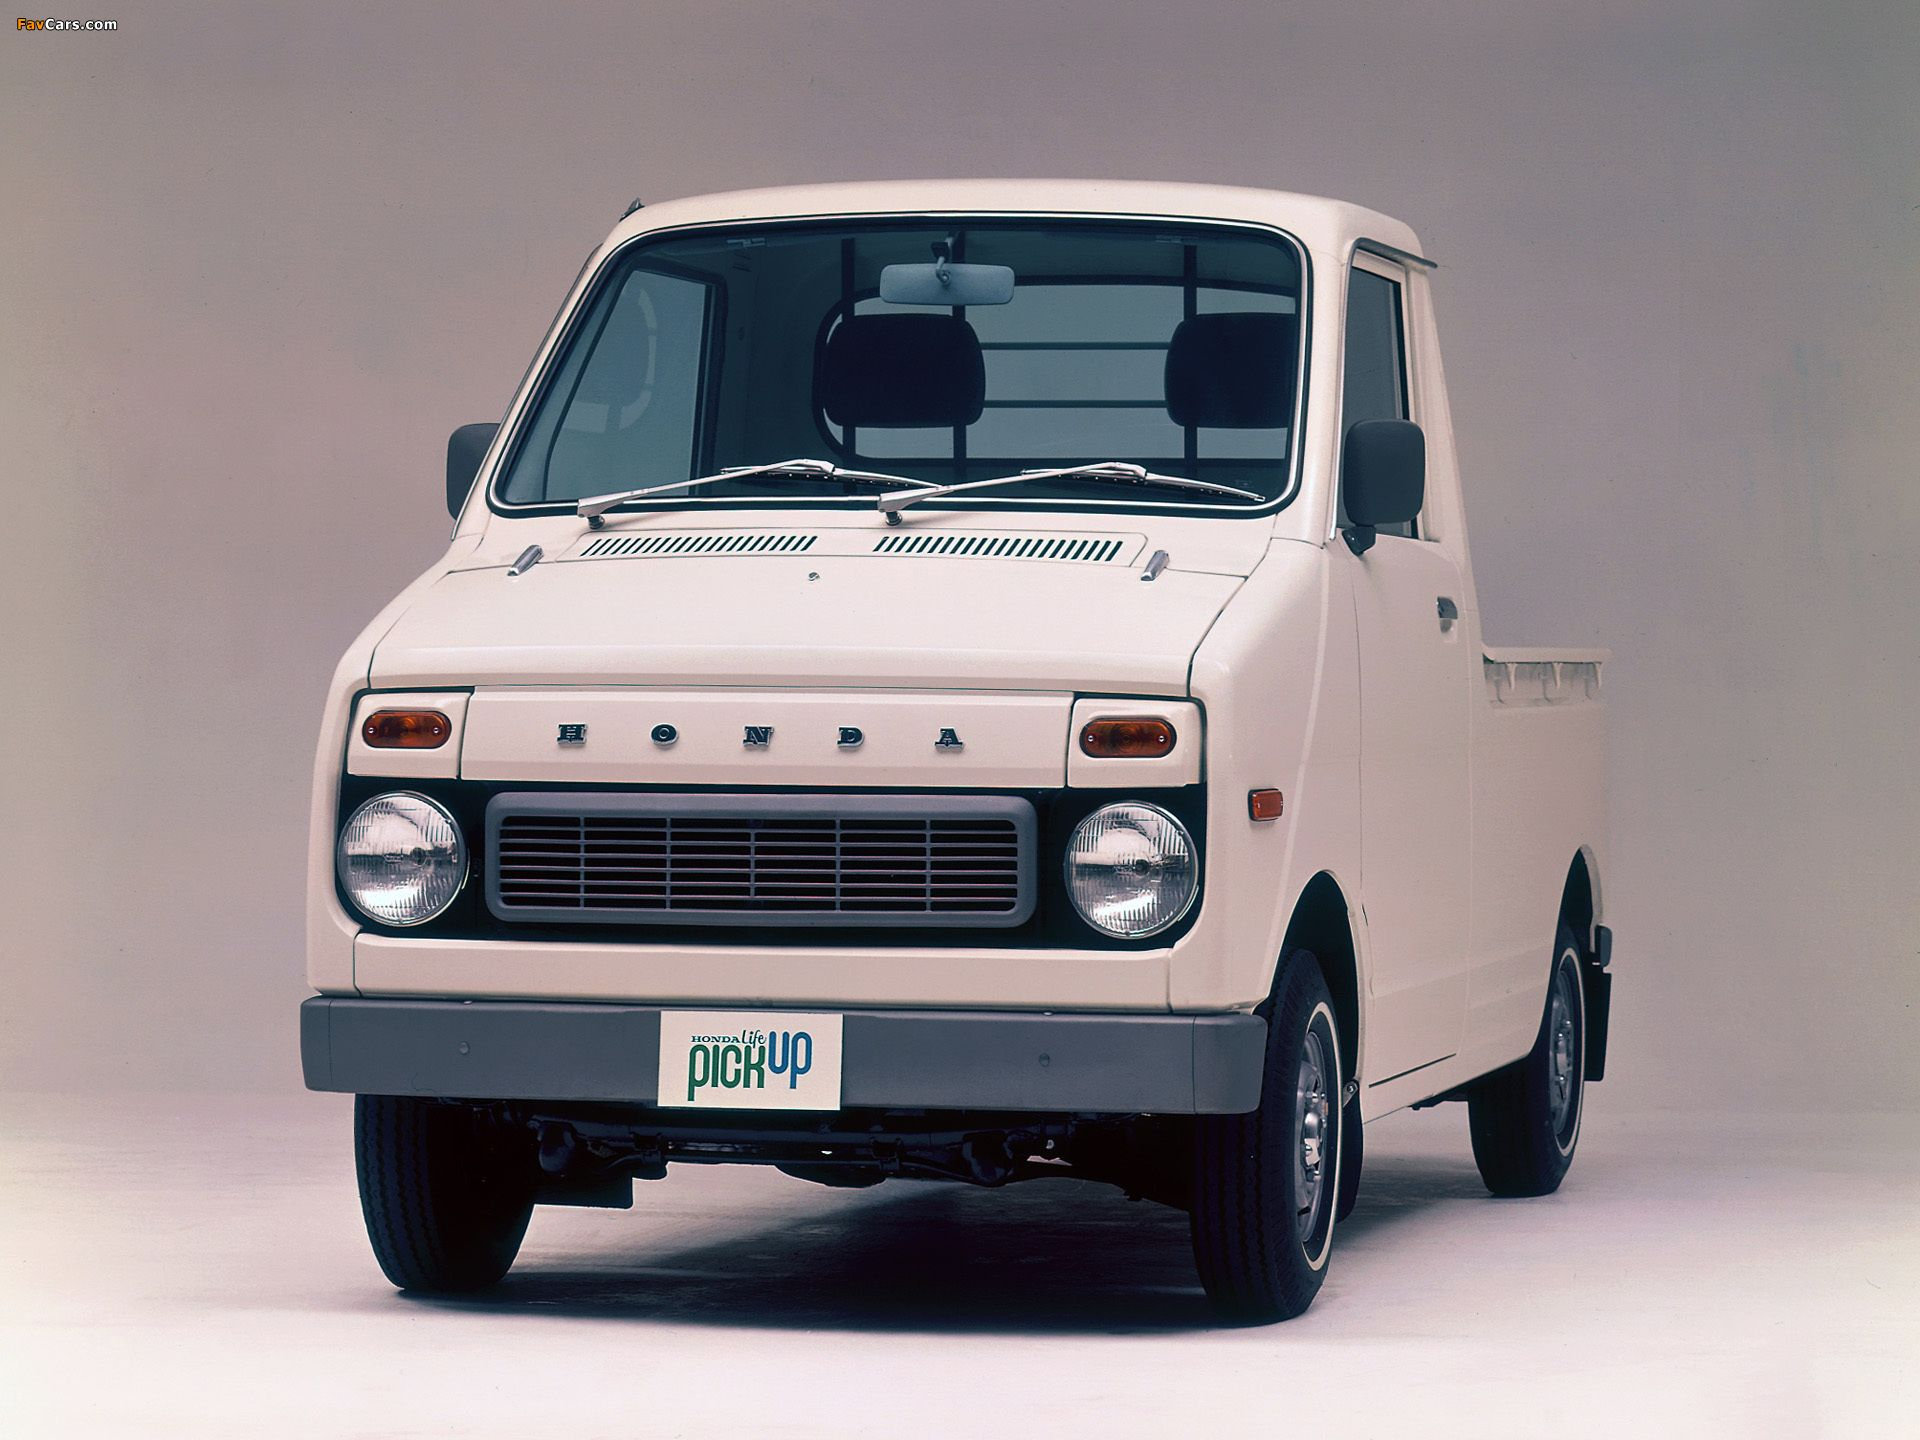 1973 Honda Life Pick Up Wow To Think Where This Company Is Today In Terms Of Technology